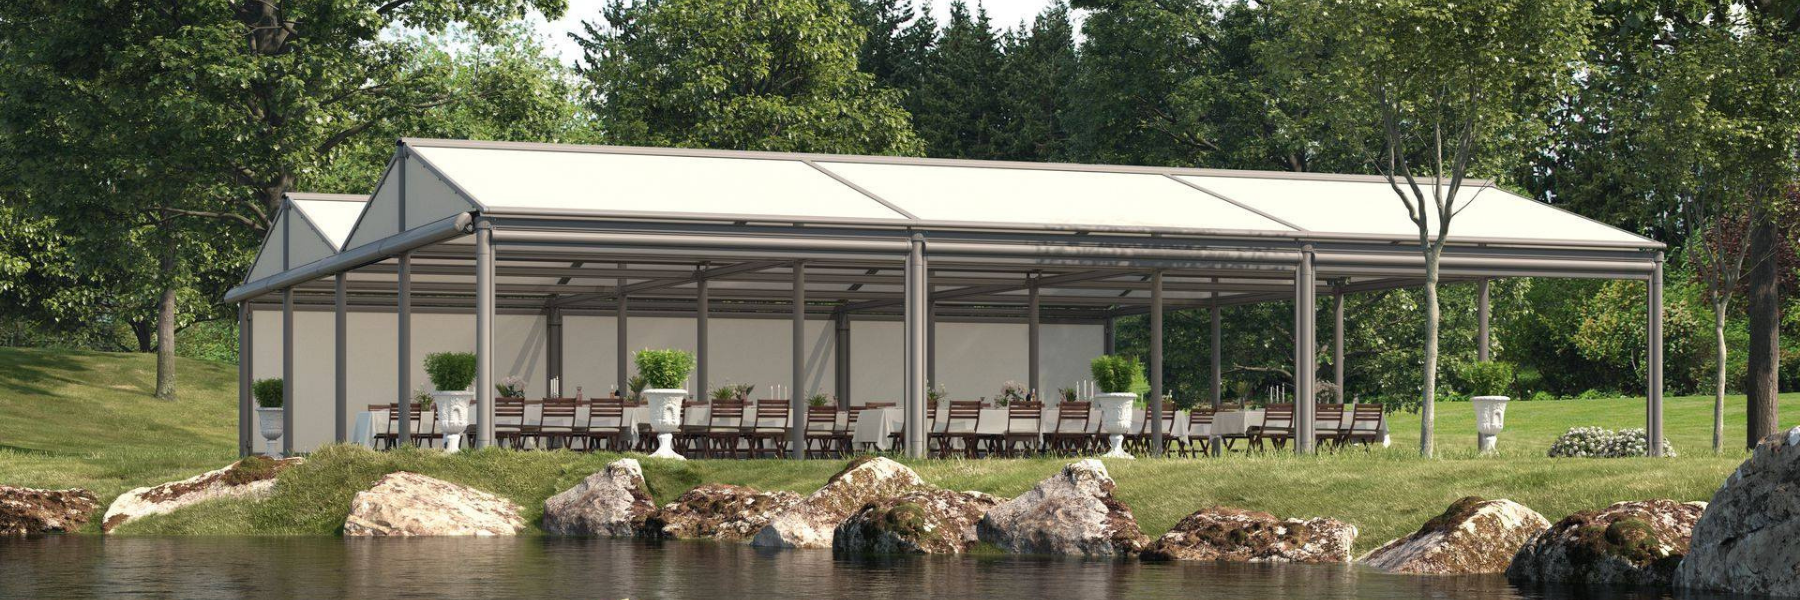 <p>Markilux Awnings & Solar Protection Projects – Bespoke Design</p> <p></p> <p>When off the shelf items don't suit or fit your venue, ask our specialists to design a bespoke product</p>